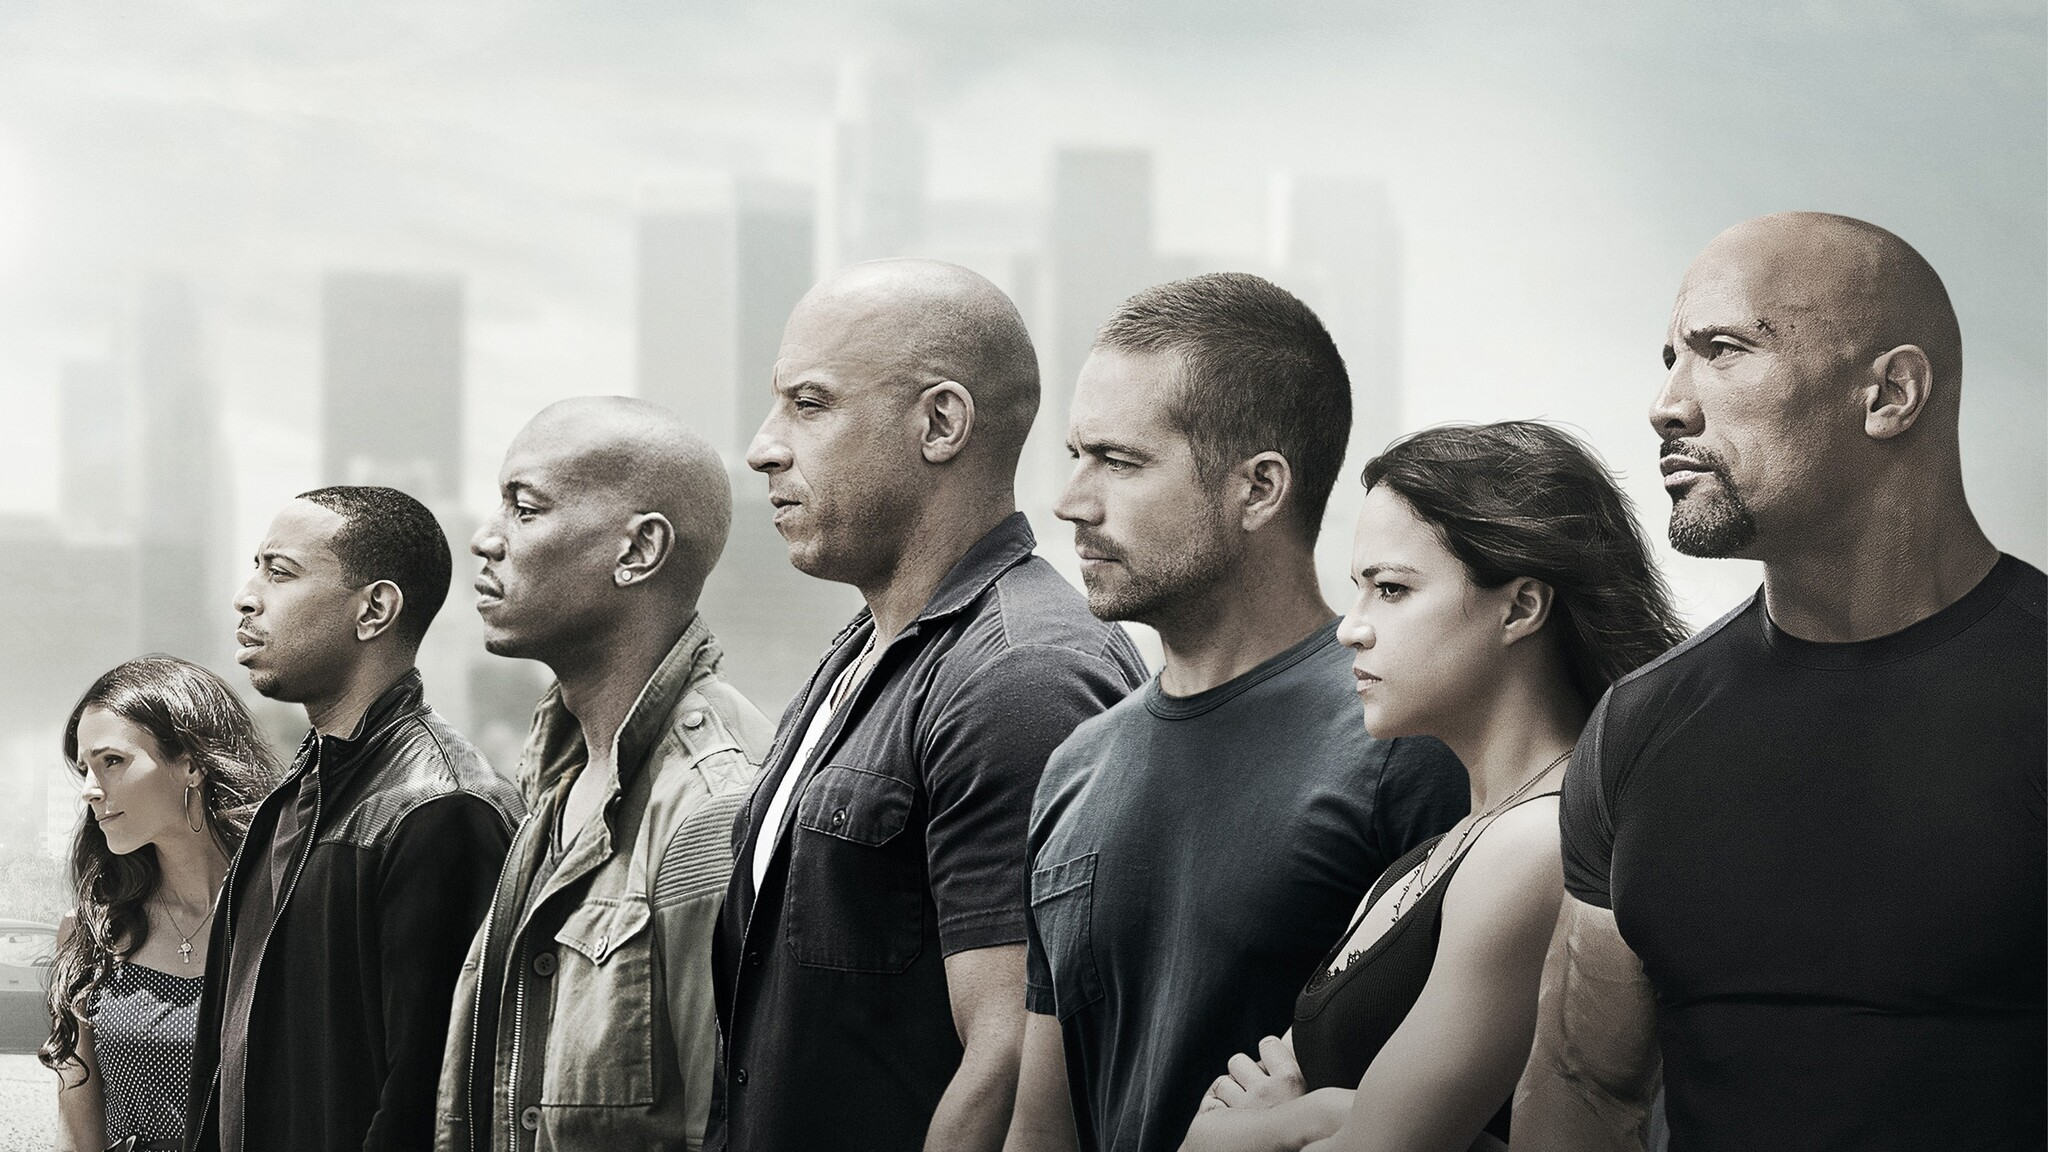 2048x1152 fast and furious 7 2015 2048x1152 resolution hd - Furious 8 wallpaper ...